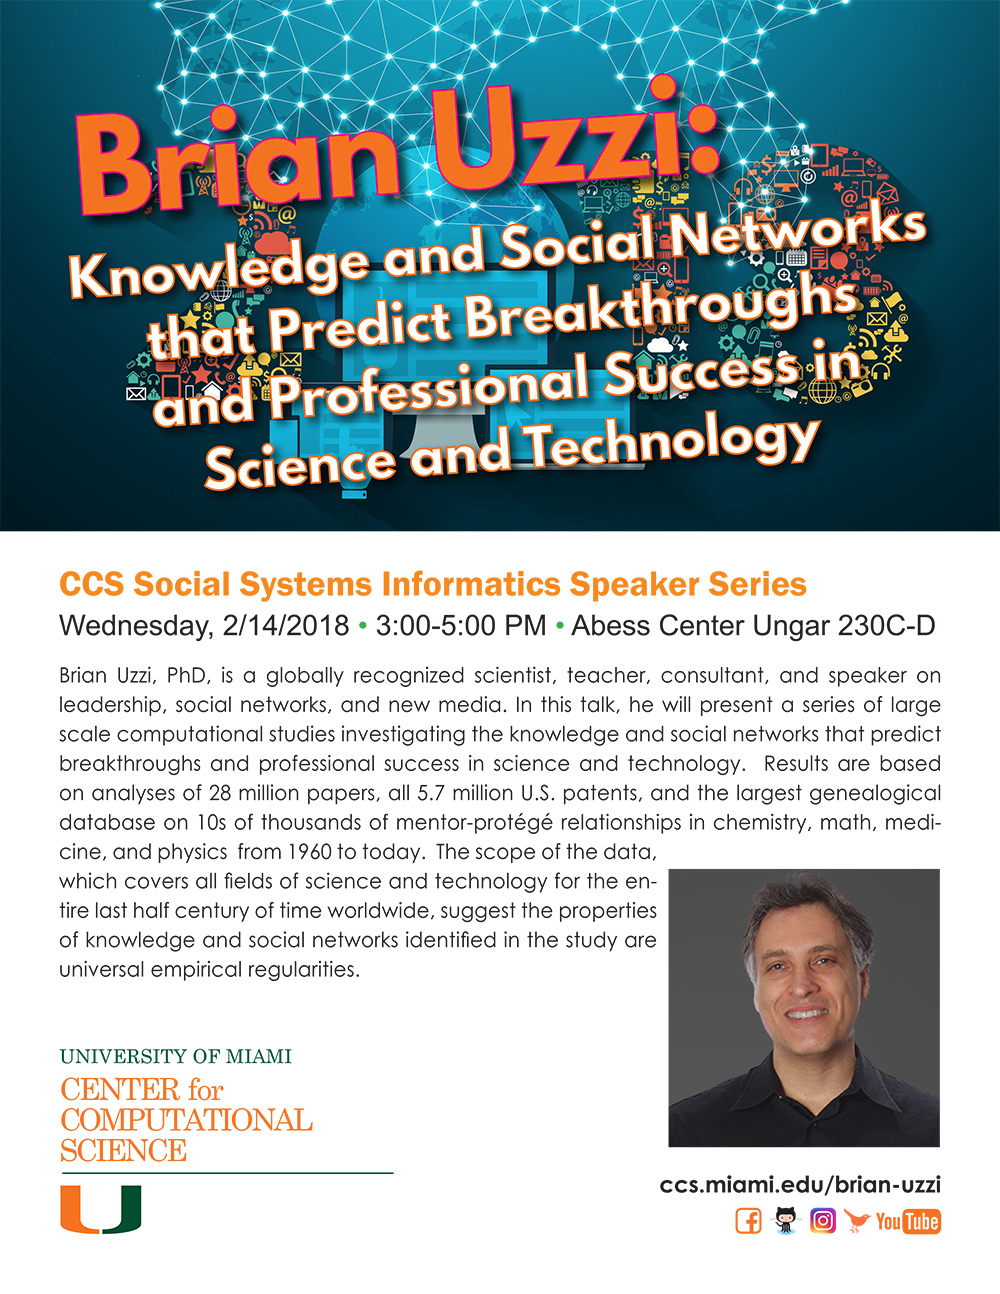 Brian Uzzi Knowledge and Social Networks that Predict Breakthroughs and Professional Success in Science and Technology